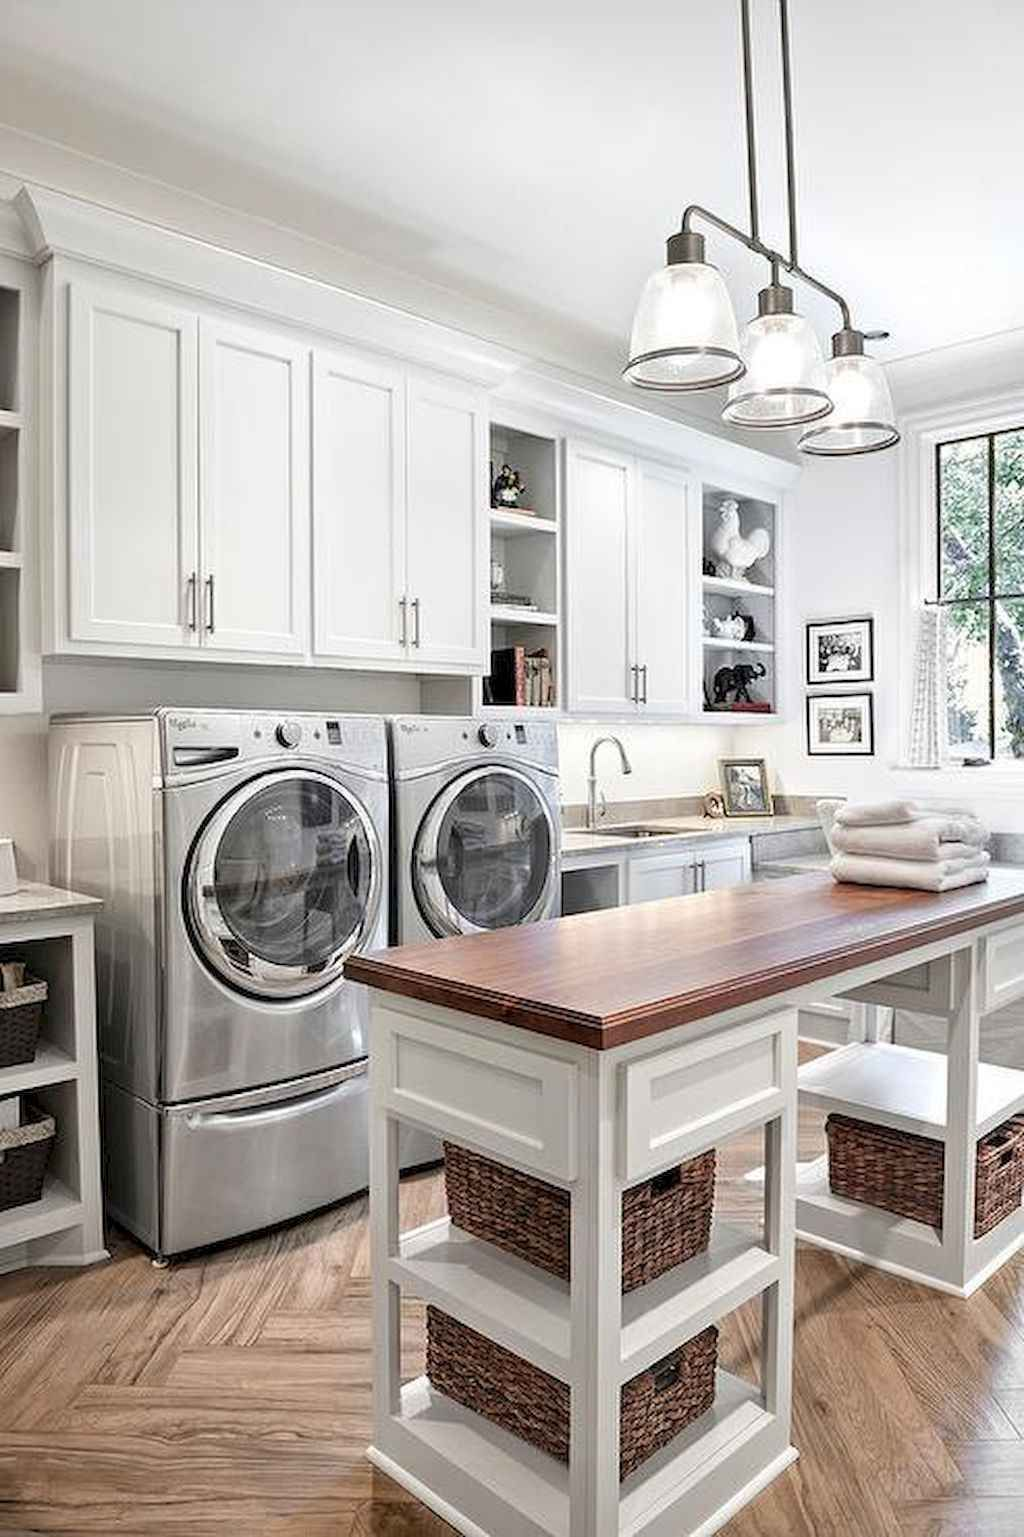 60 Simple Laundry Room Ideas Decorating images